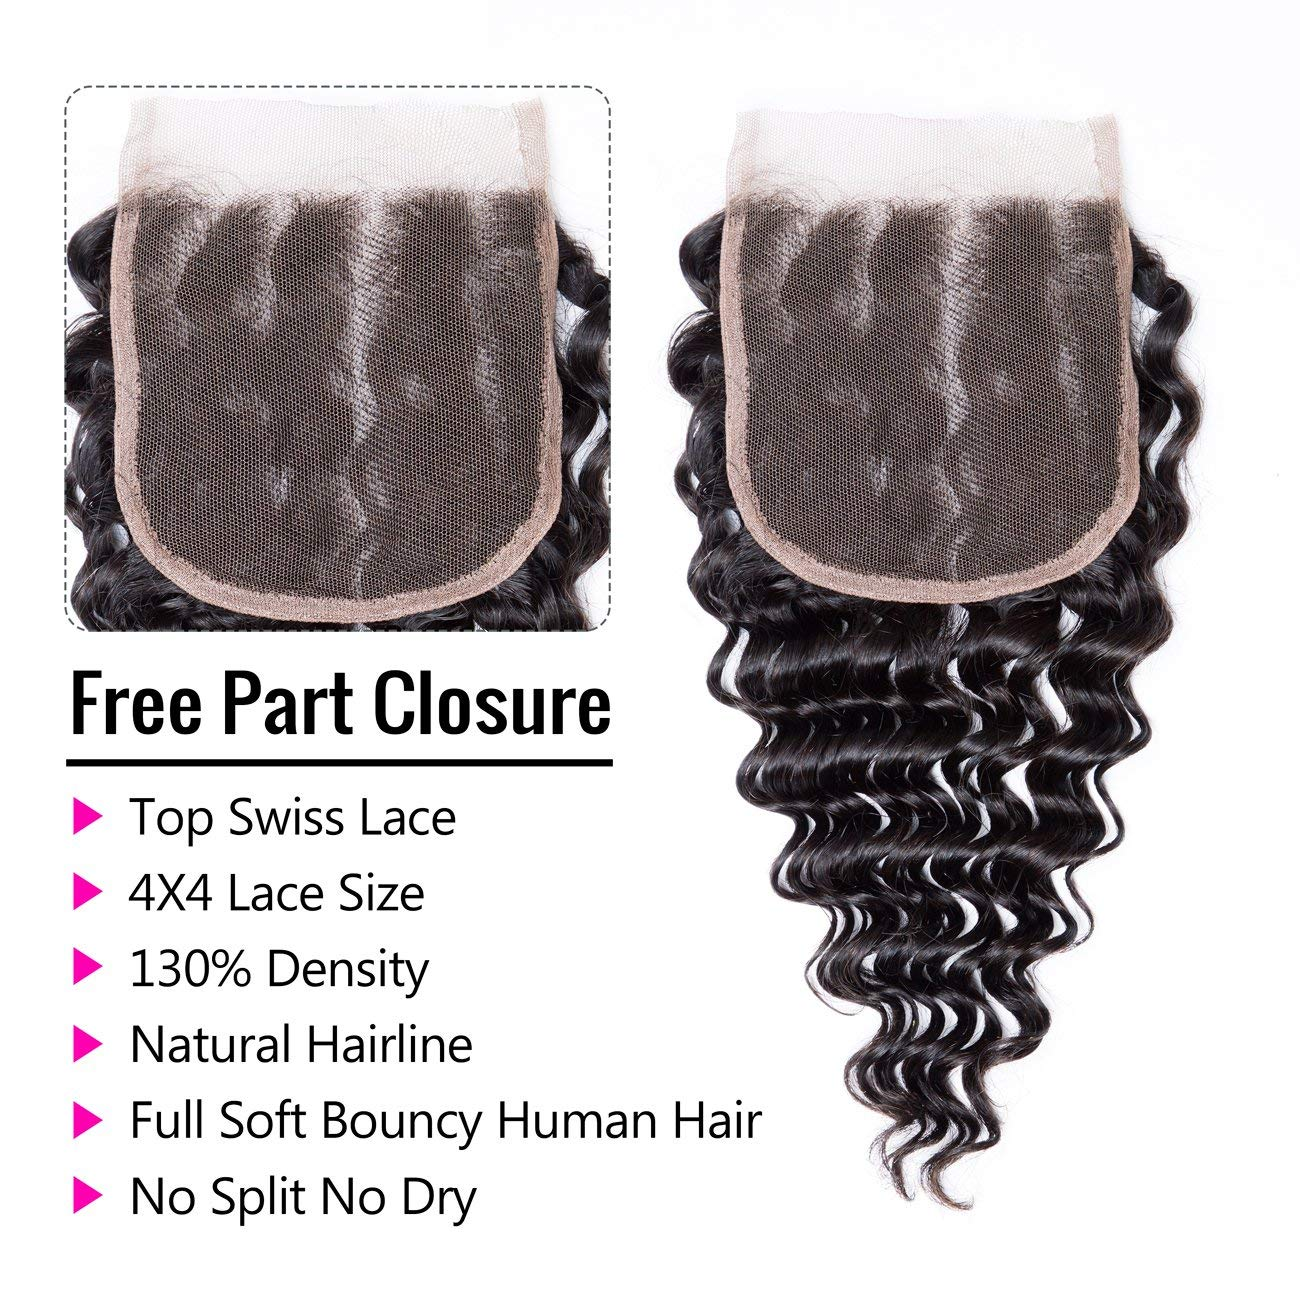 Brazilian Hair 4 Bundles With Closure Short Human Hair Weave Bundles With Free Part Lace Closure 8A Brazilian Straight Hair 8 inch Natural Color (8 8 8 8+8 closure)